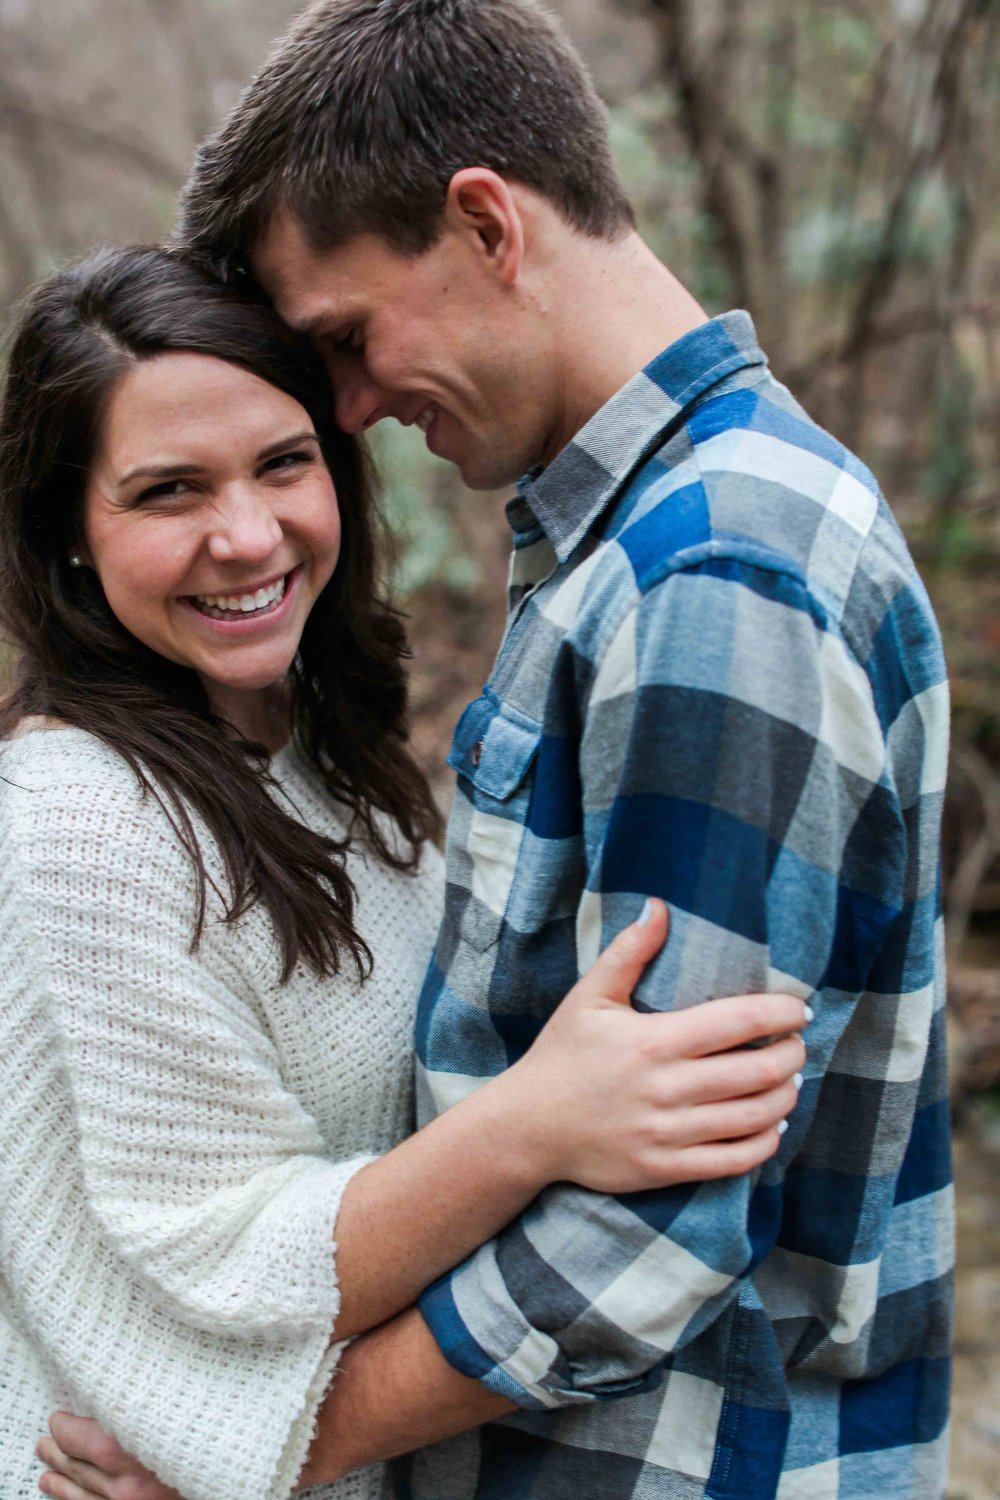 Ellie Fellbaum and Daniel Rogers Engagement Photos (403 of 525).jpg